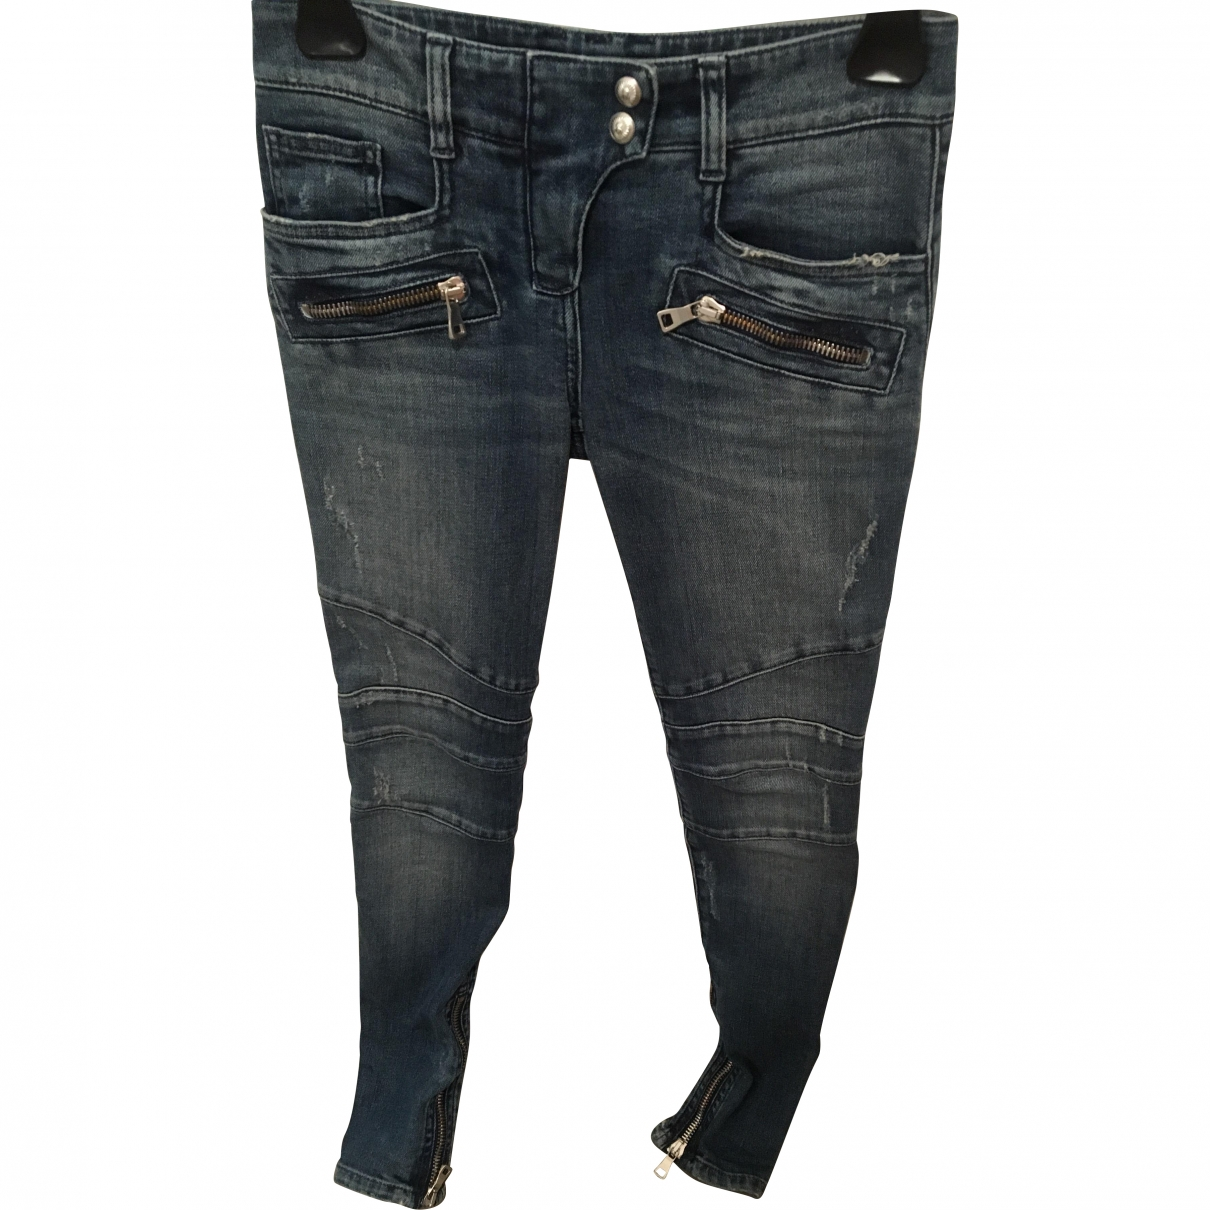 Balmain \N Blue Denim - Jeans Jeans for Women 34 FR